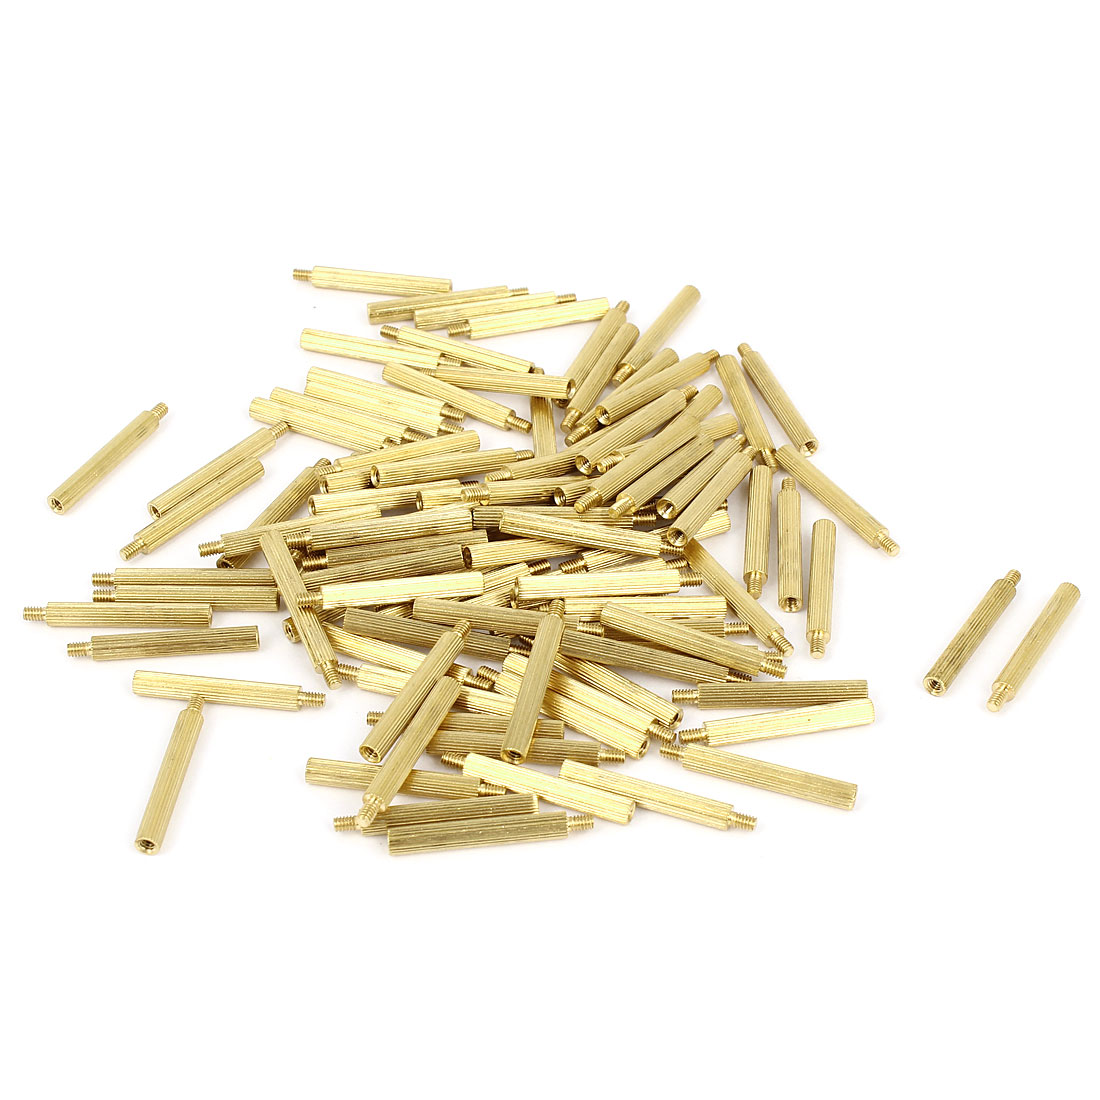 100 Pcs M2x21 Knurled Monitoring Column Brass Cylinder Copper Pillars